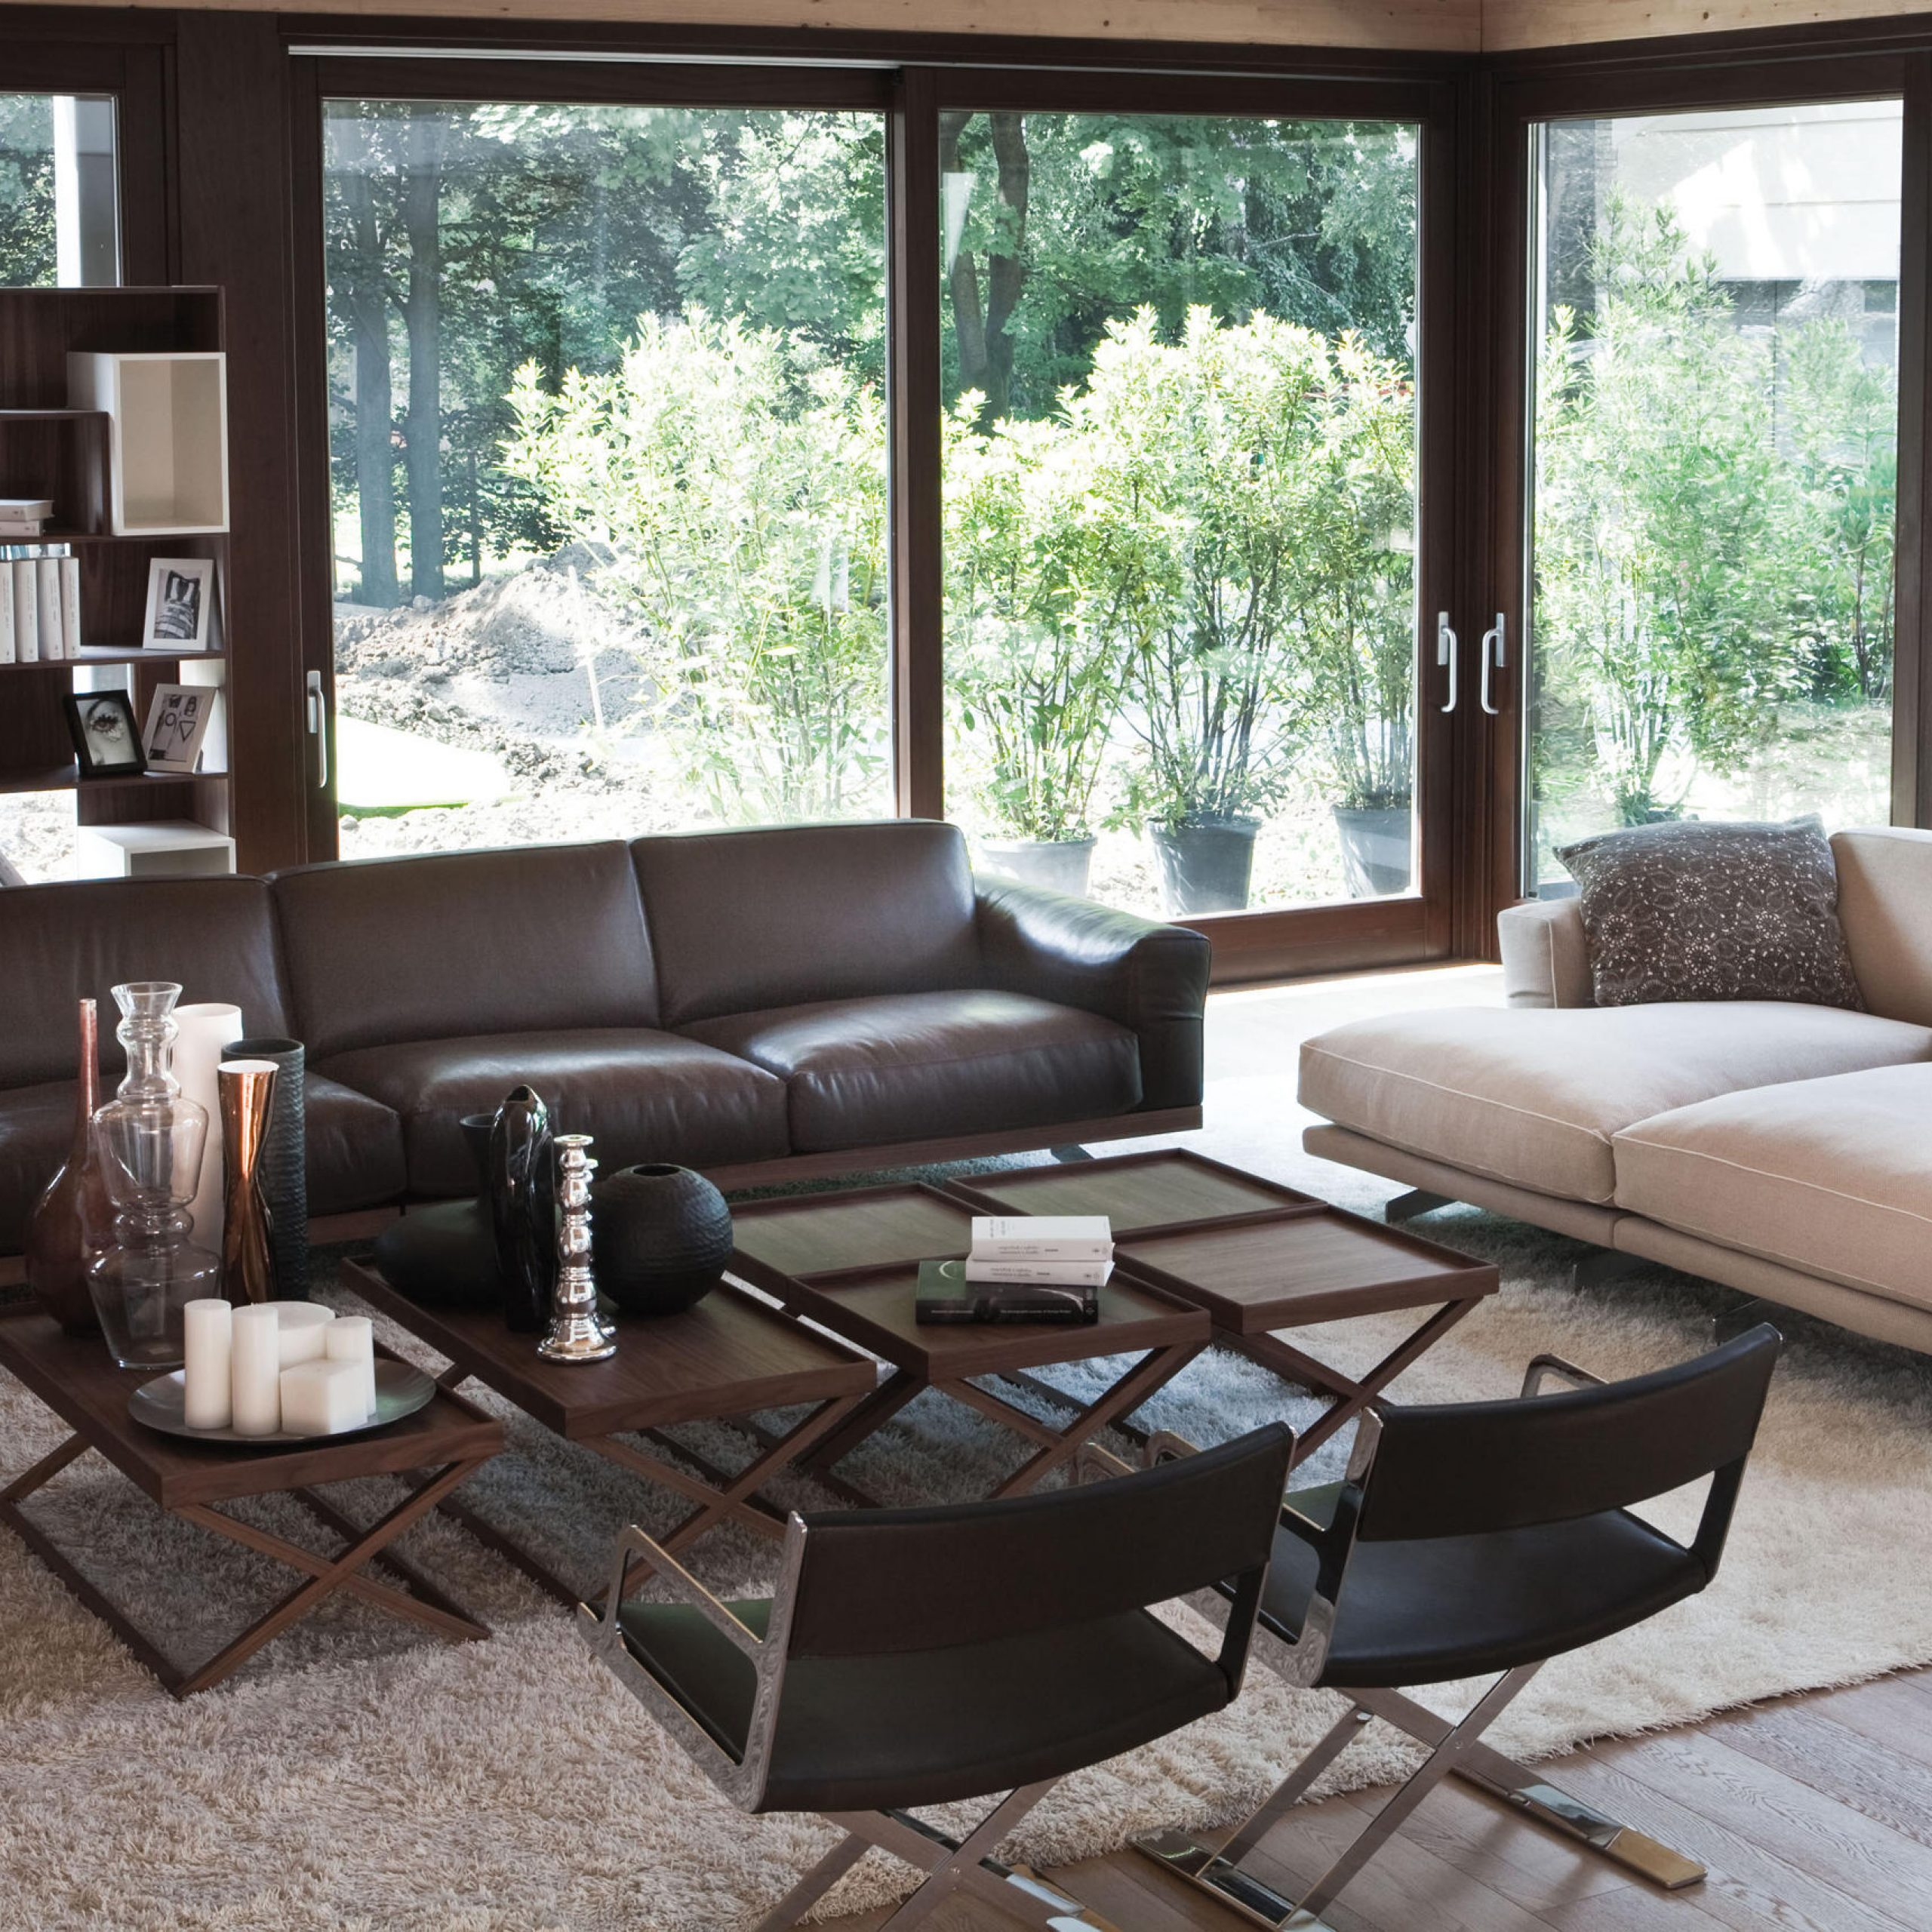 Fancy 470 Sofa – Modular Seating Elements From Vibieffe Intended For Fancy Sofas (View 1 of 15)